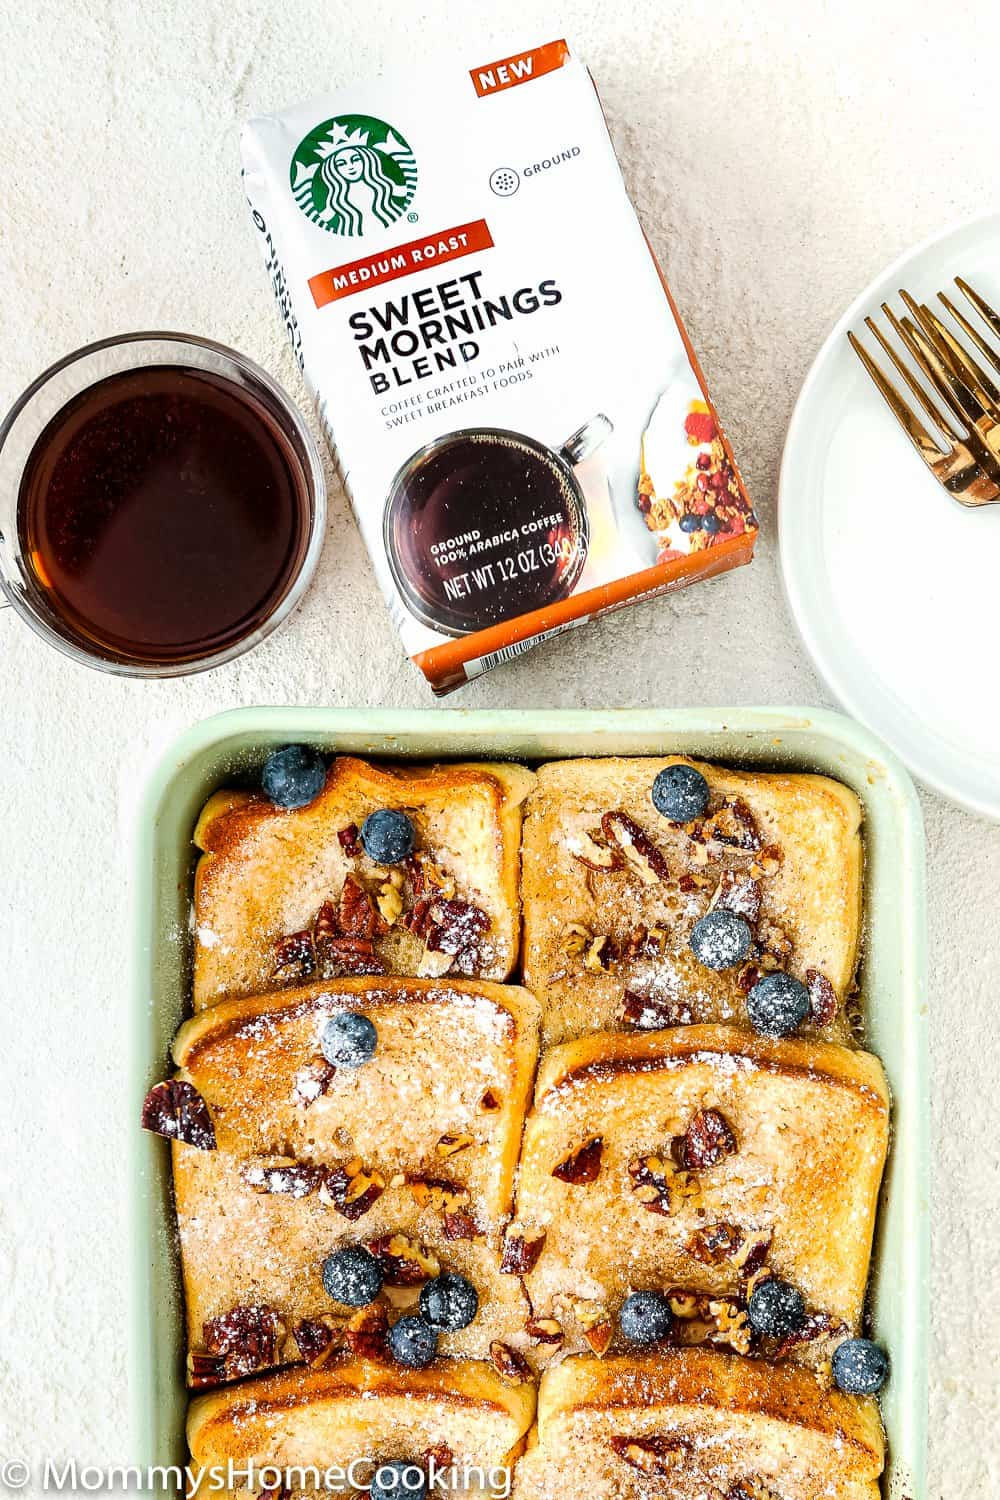 ggless French Toast Casserole with sweet morning coffee